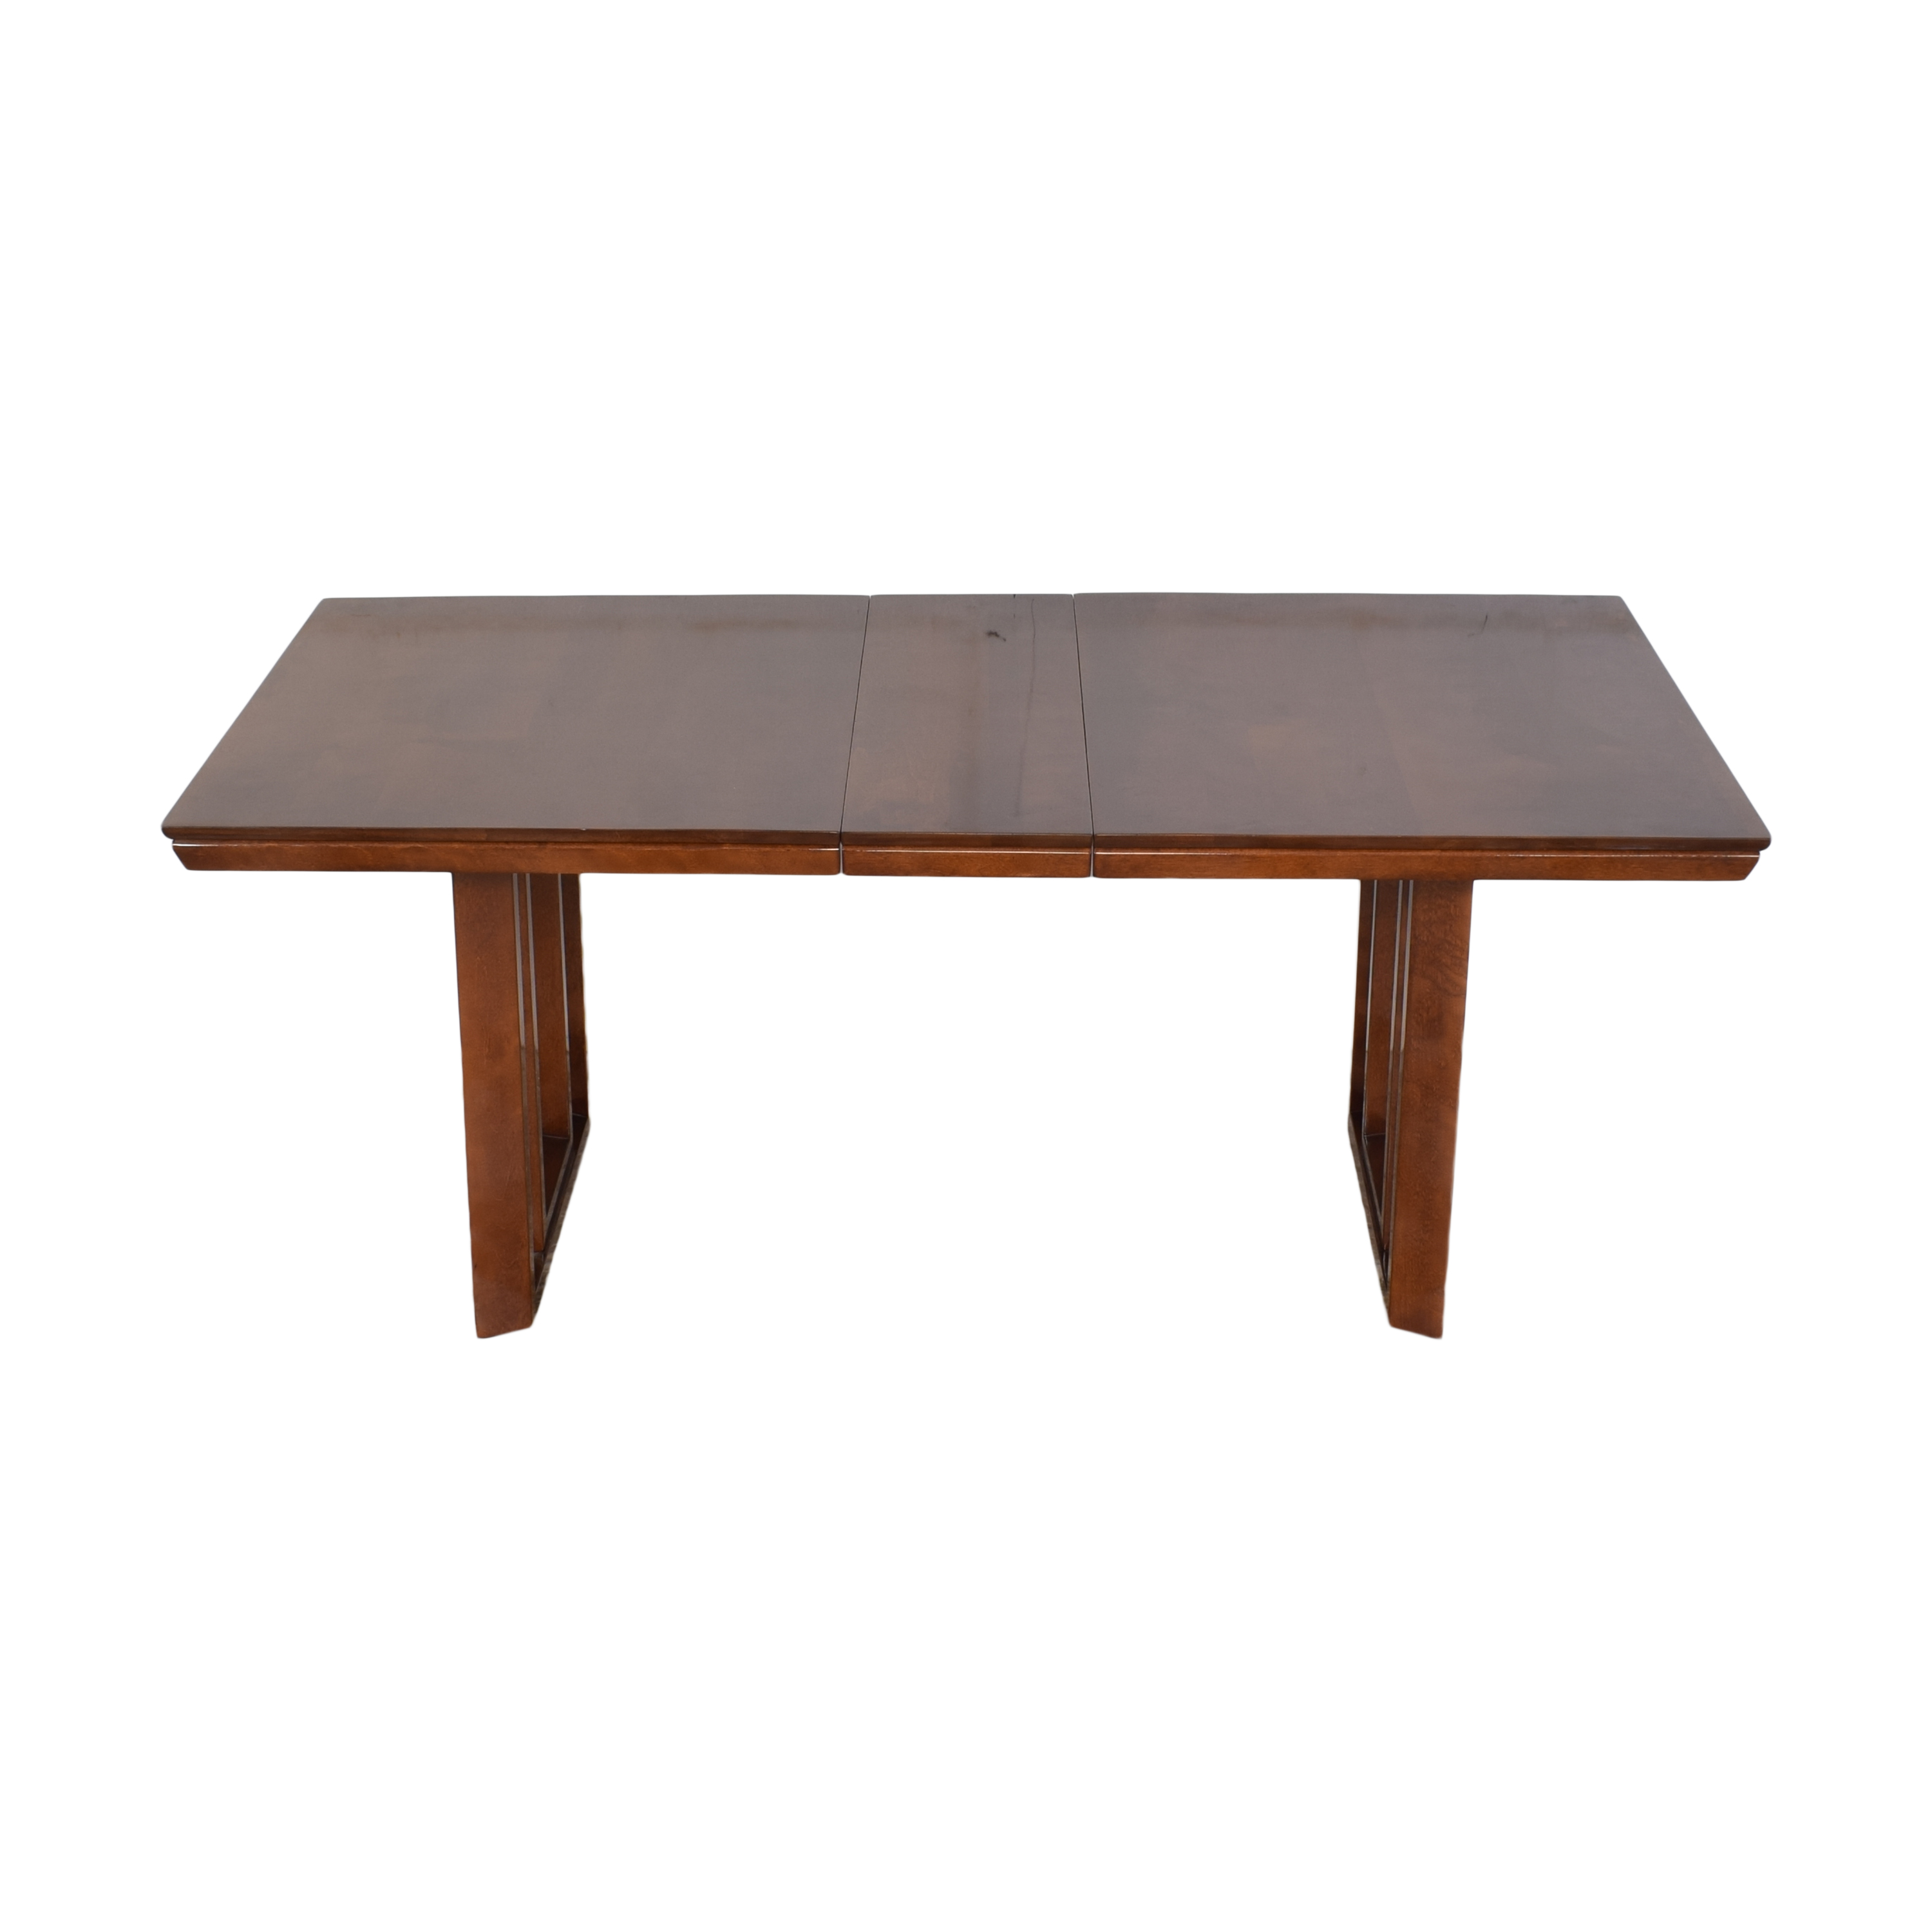 Conant Ball Conant Ball Expandable Dining Table dimensions